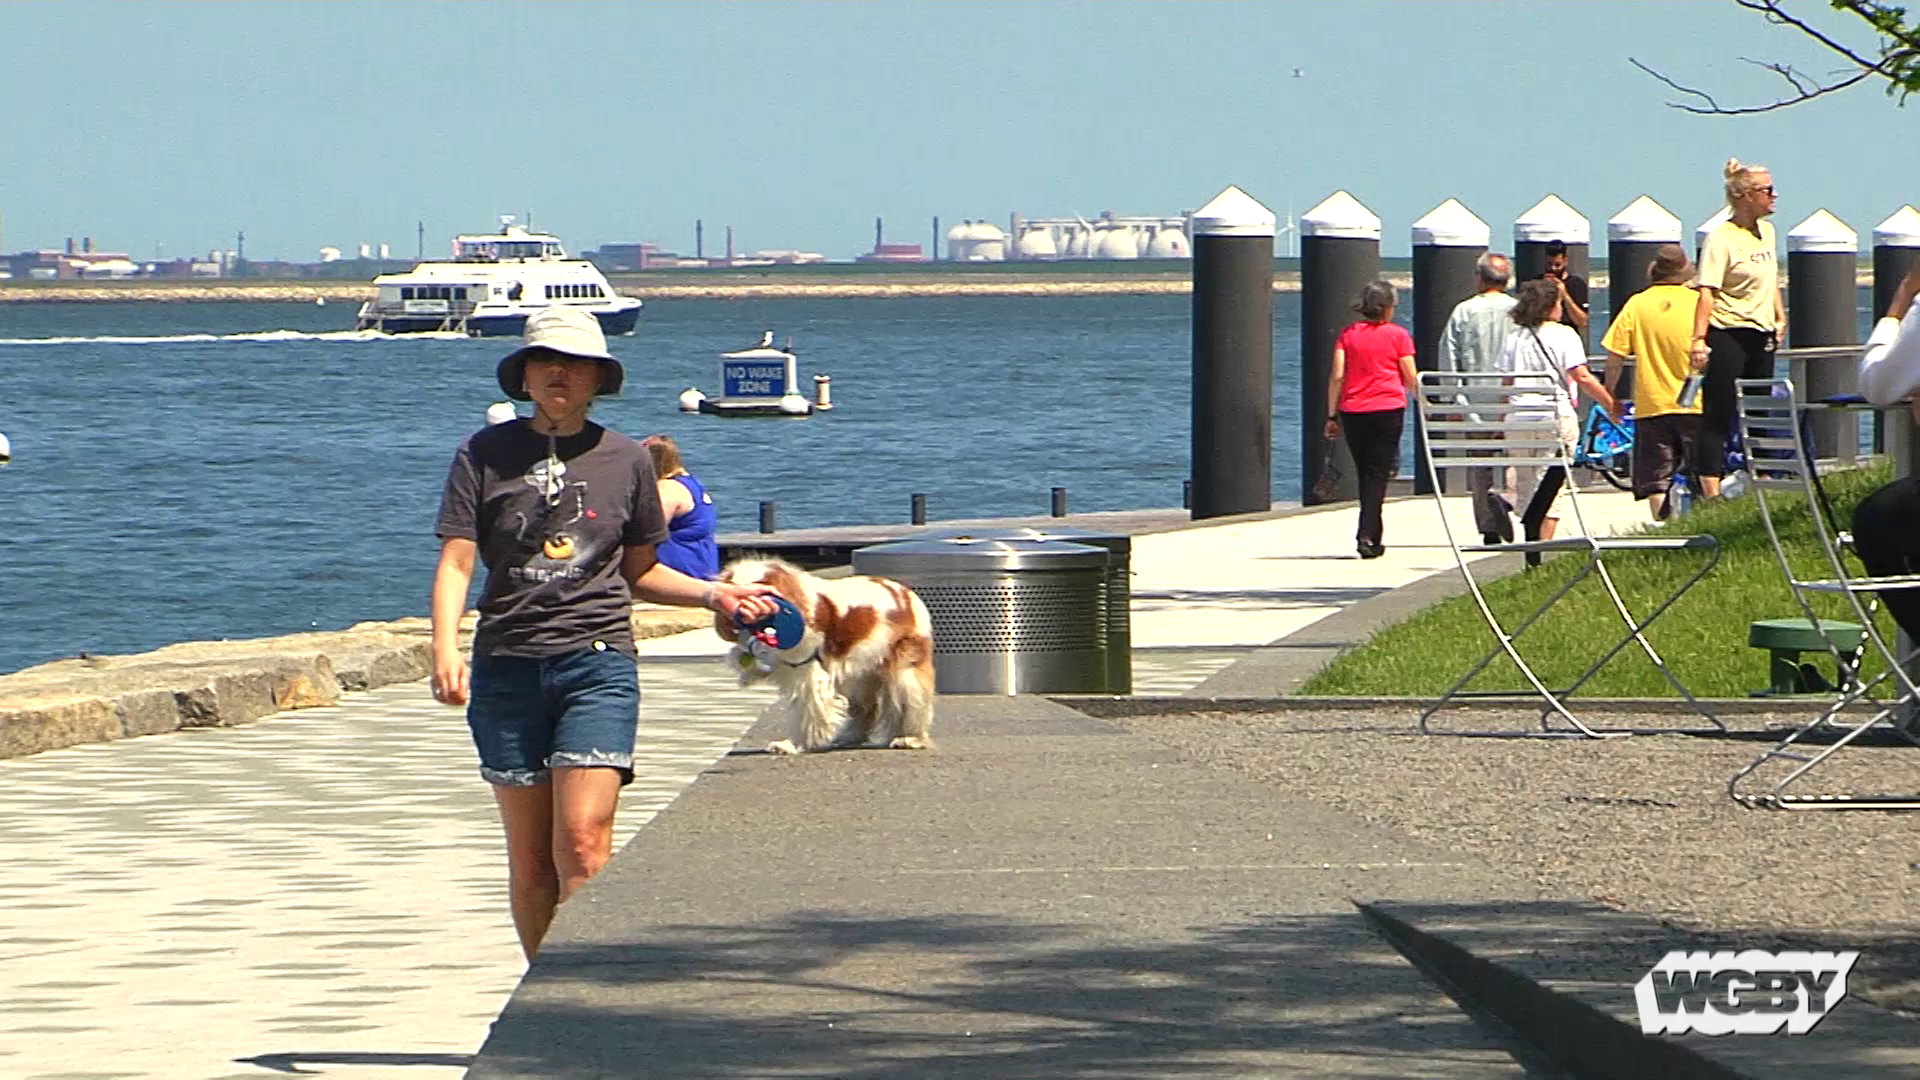 Thanks to a Massachusetts Executive Office of Energy and Environmental Affairs grant, the city of Boston is exploring ways to address climate change. One idea includes building a barrier wall in the Boston Harbor to protect the city against rising sea levels. Connecting Point's Stephanie Leydon reports.